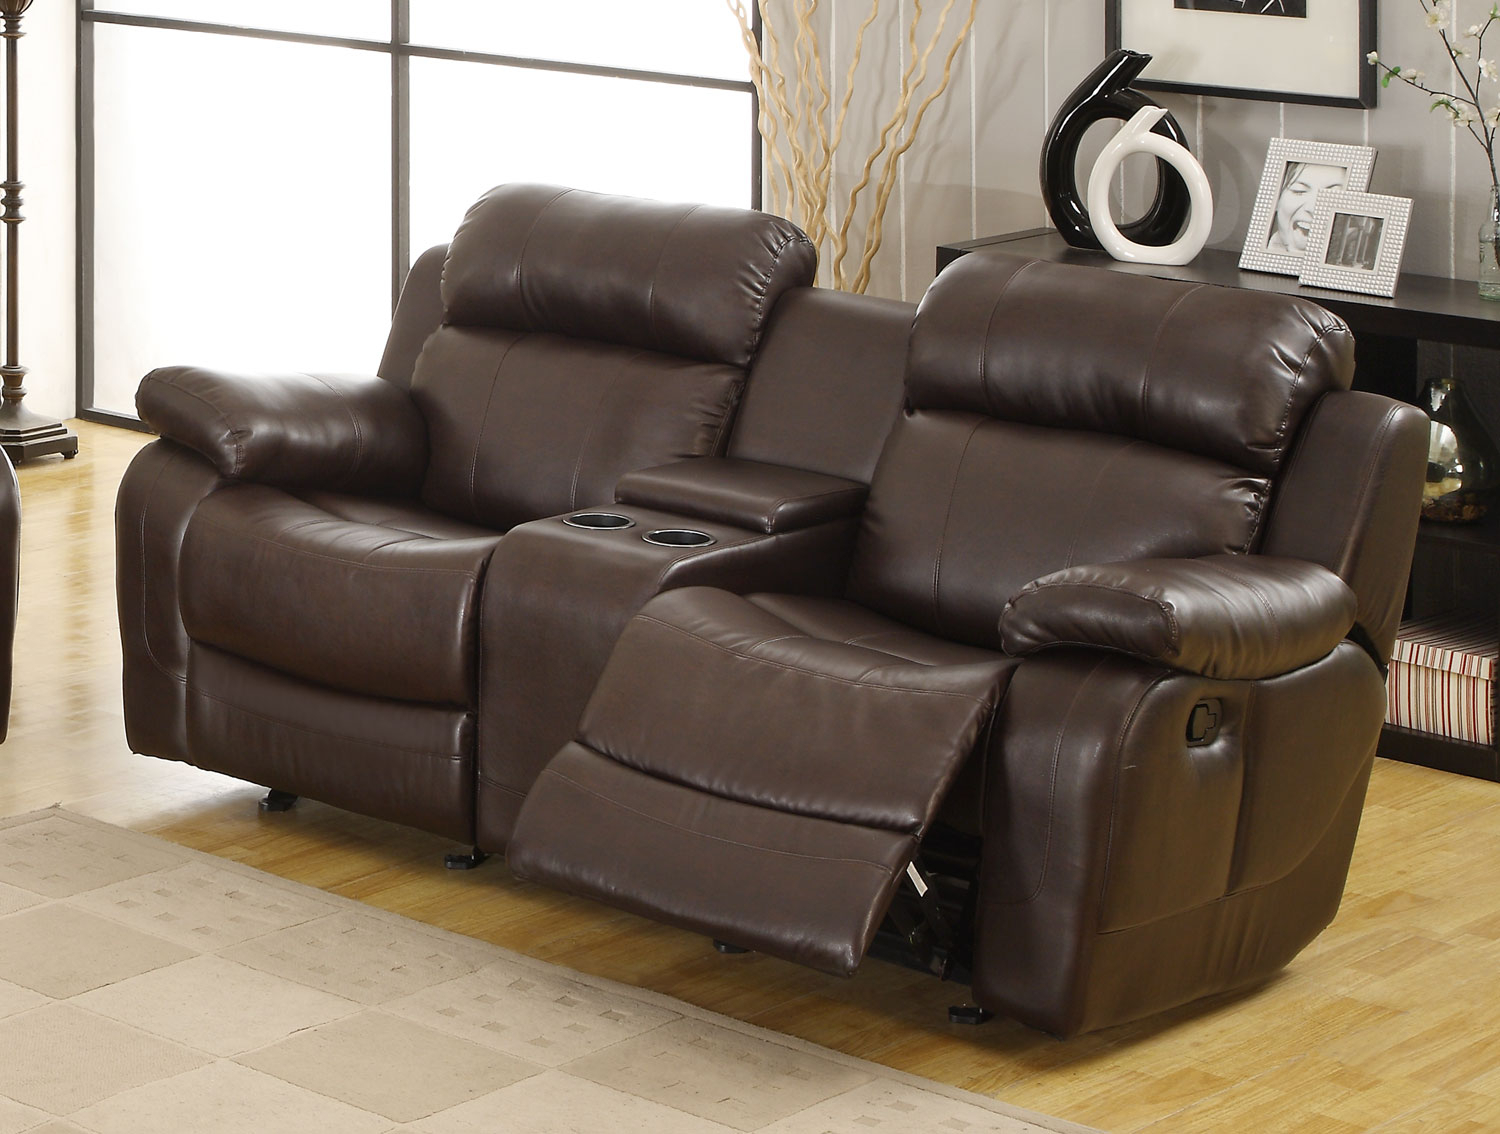 Marille Dark Brown Double Glider Reclining Loveseat For Double Glider Loveseats (Image 18 of 25)